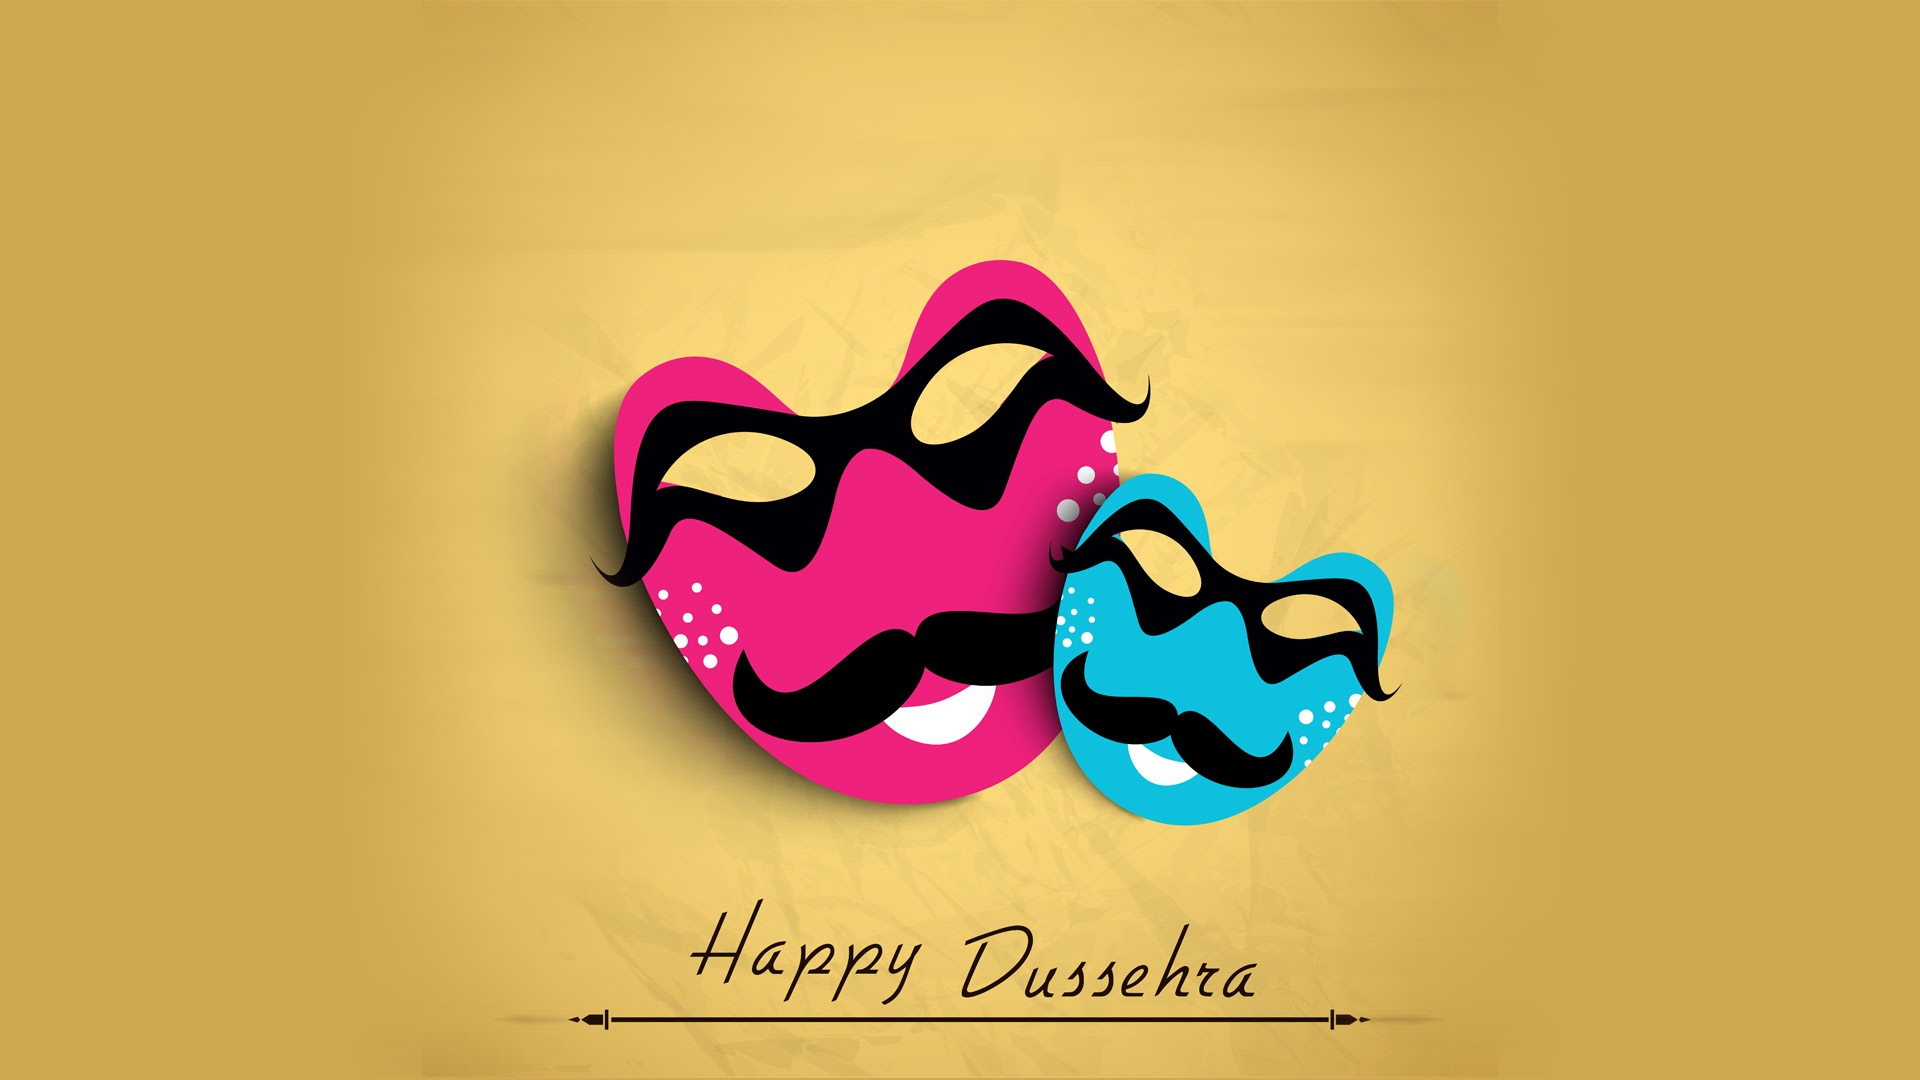 Happy Dussehra HD Images, Wallpapers, Pics, and Photos {Download}  Human Boundary